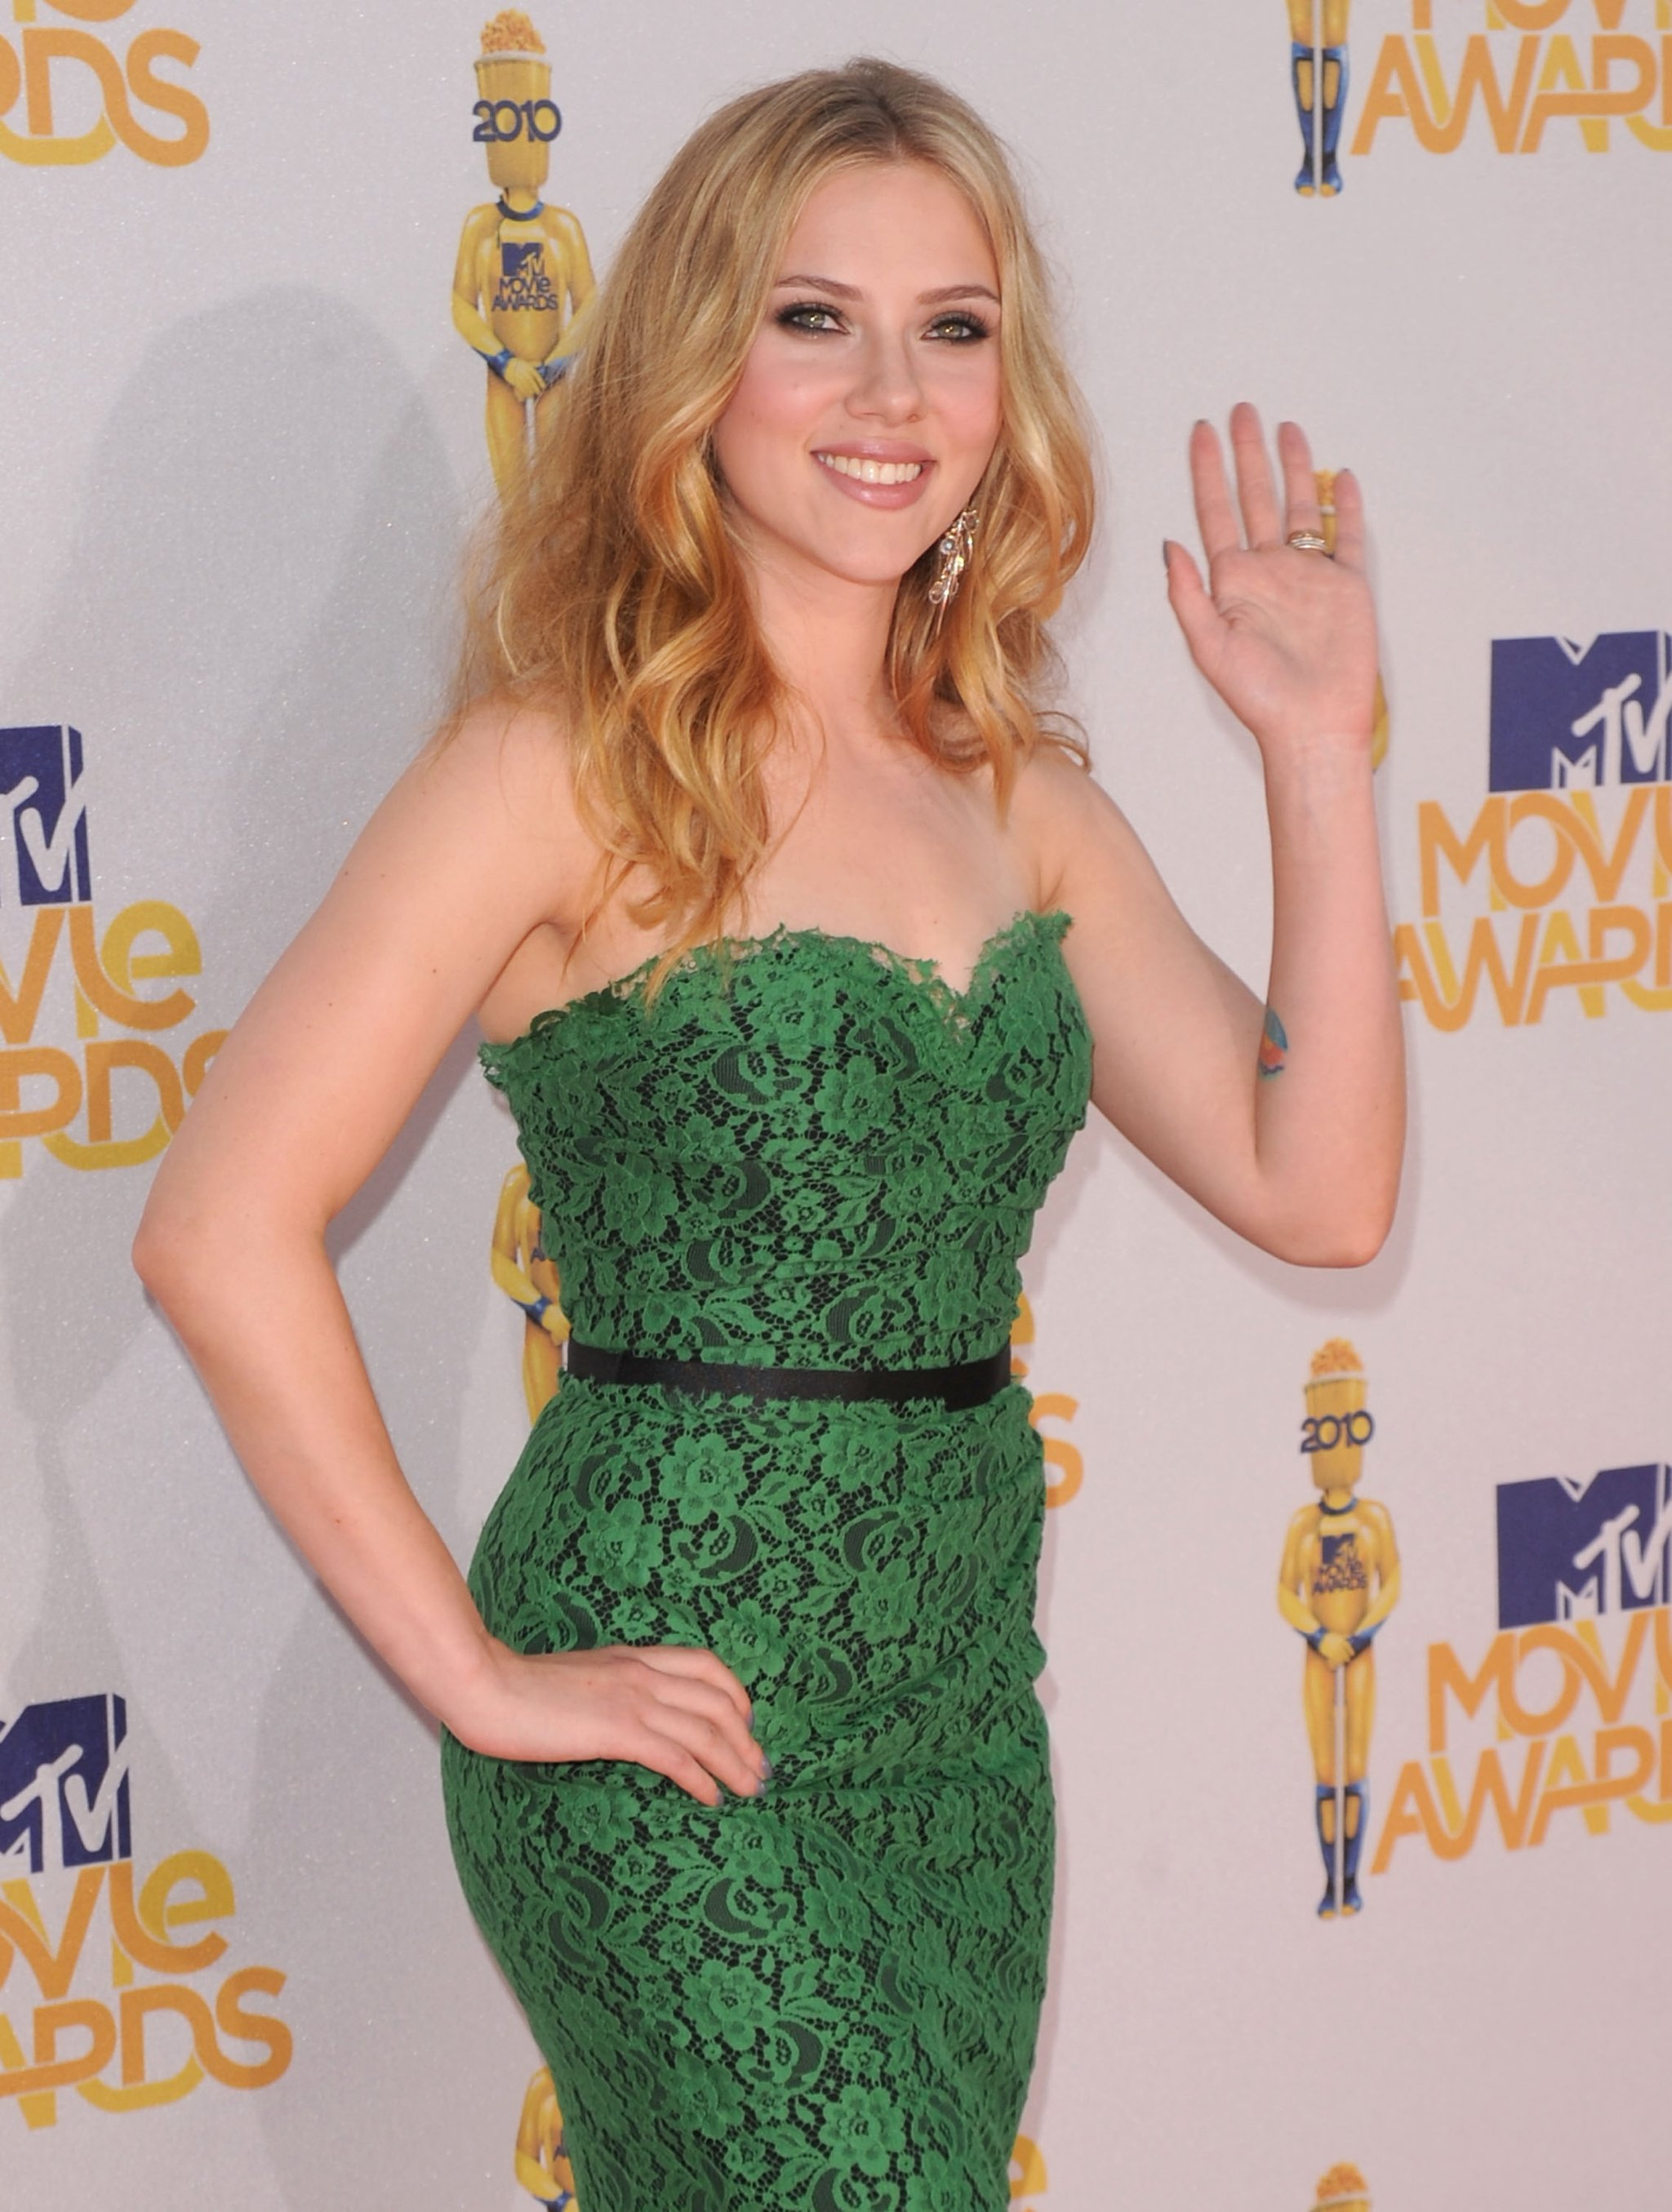 MTV Movie Awards 1 - Scarlett Johansson Net Worth, Awards, Movies and Private Life, Pictures and Wallpapers